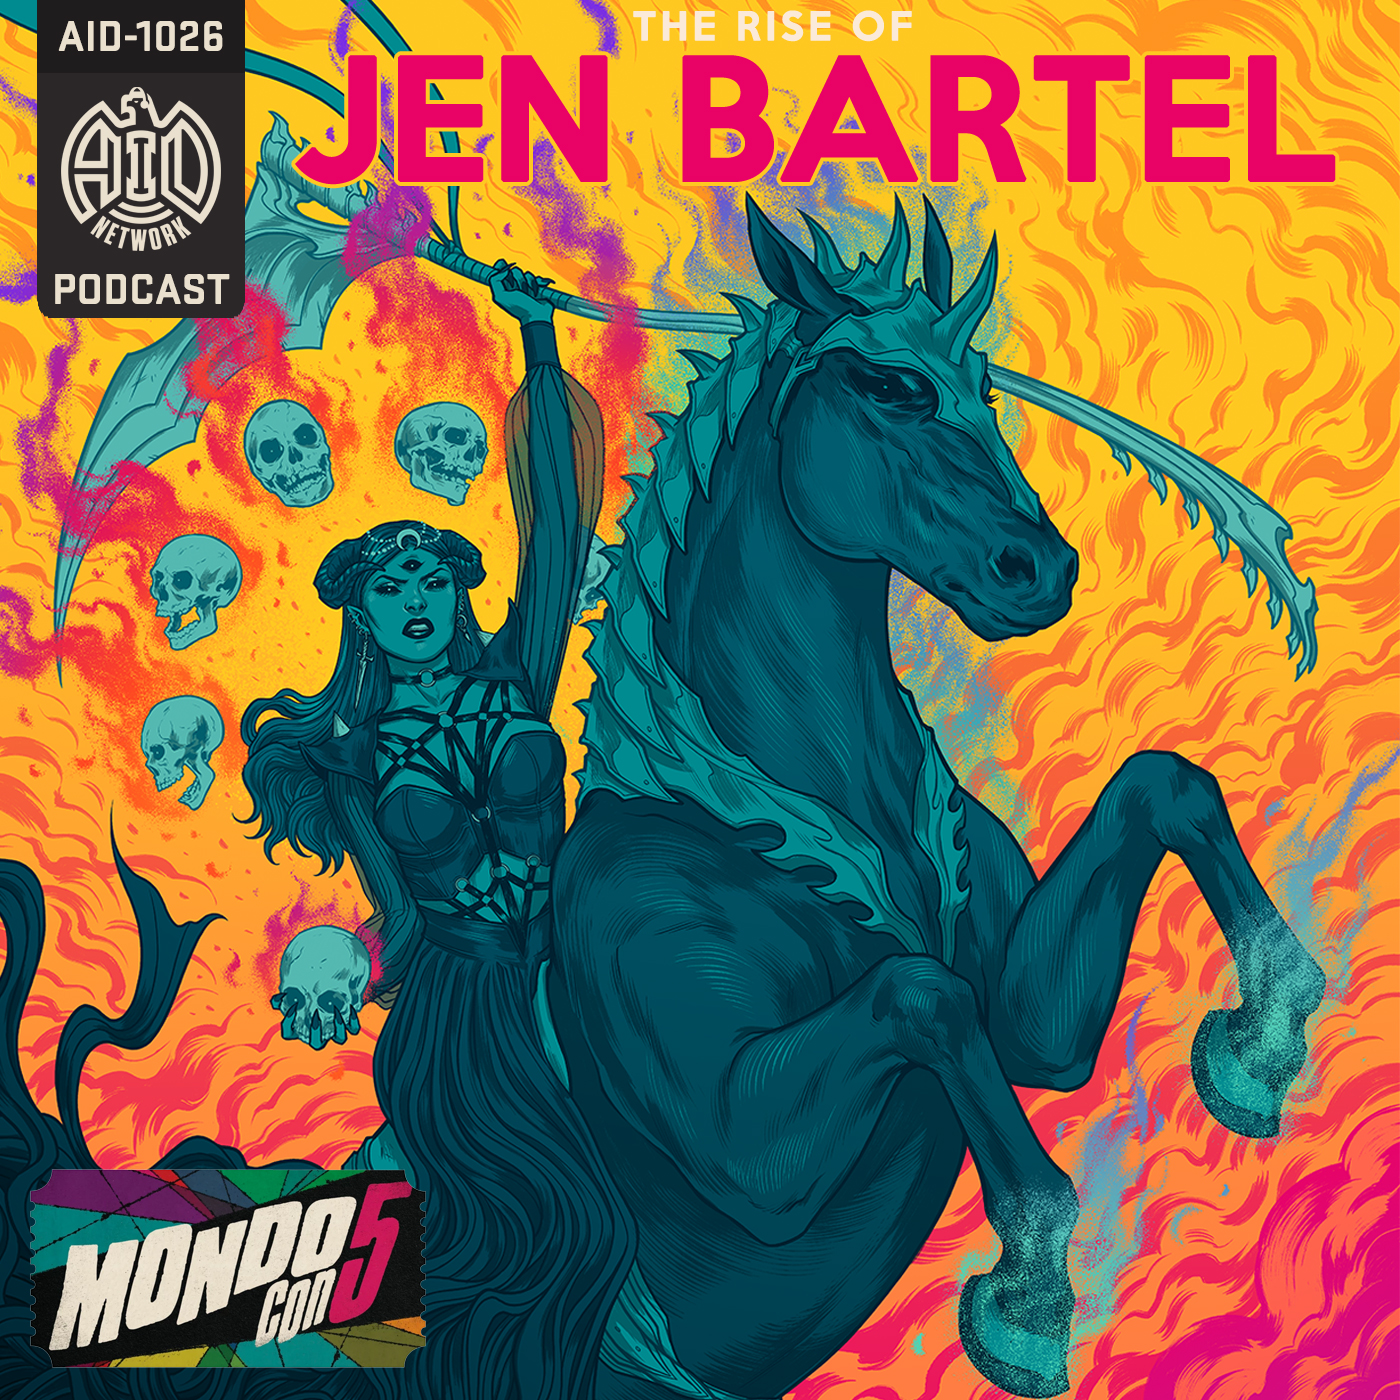 Jen Bartel - Graphic Novel Illustrator show art